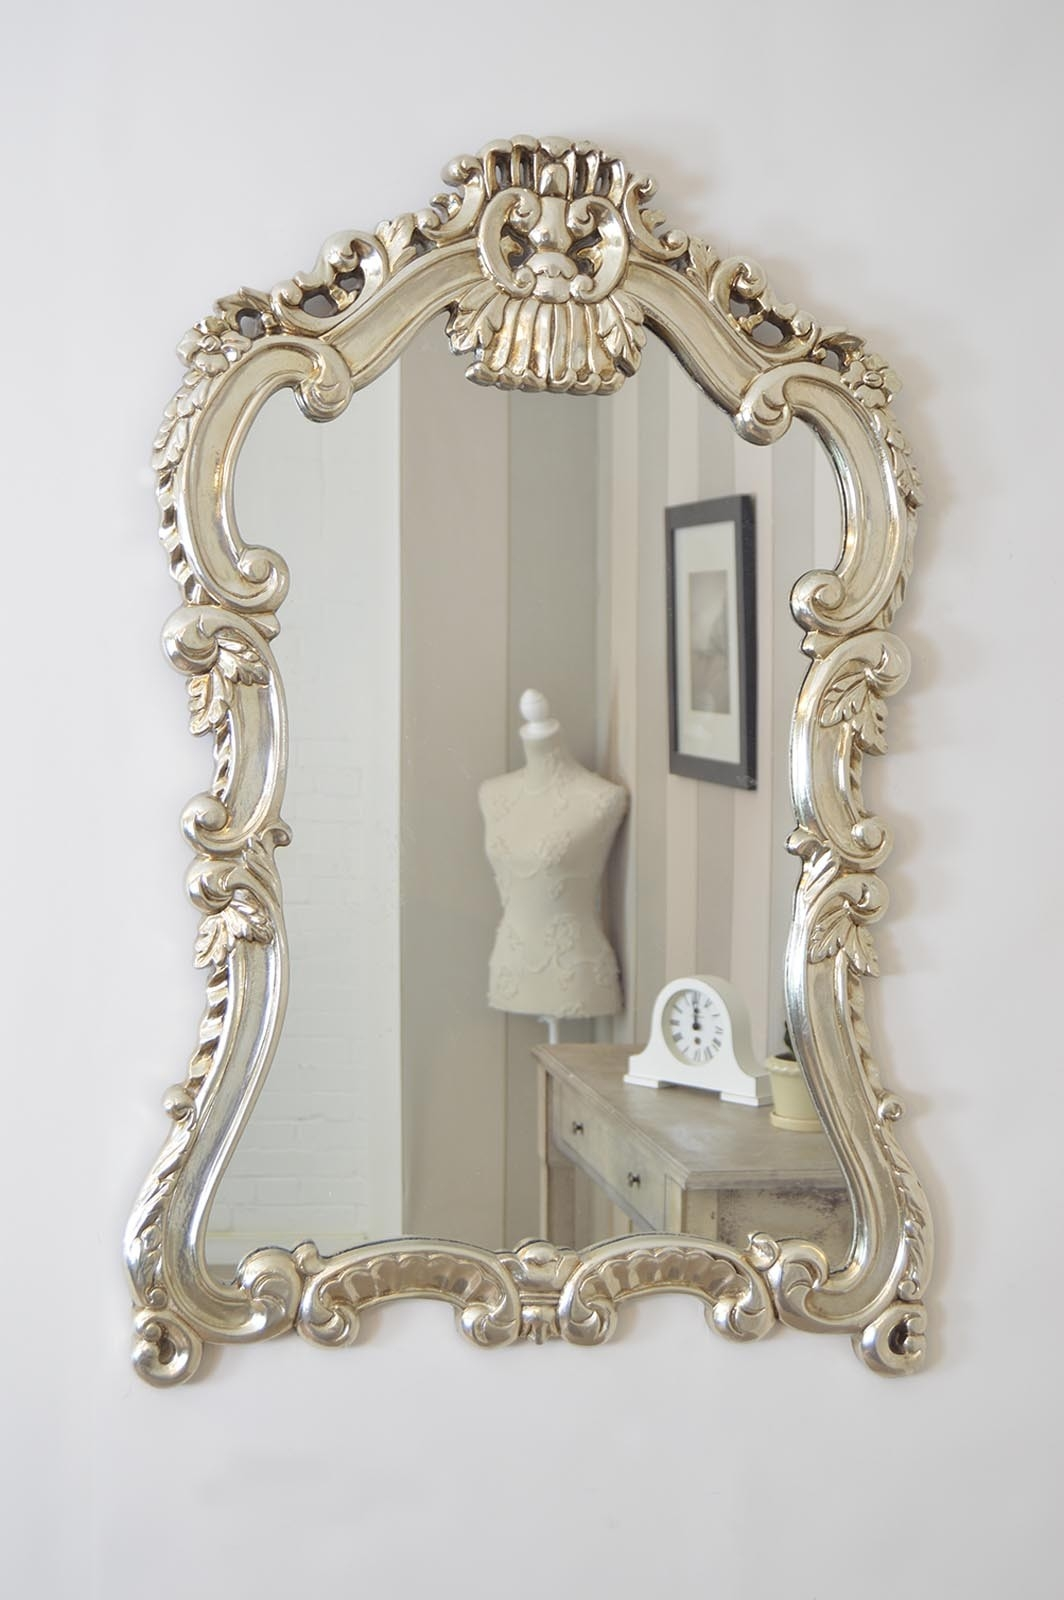 3ft6 X 2ft8 115cm X 82cm Large Silver Baroque Style Ornate Big With Regard To Silver Ornate Mirror (Image 1 of 15)